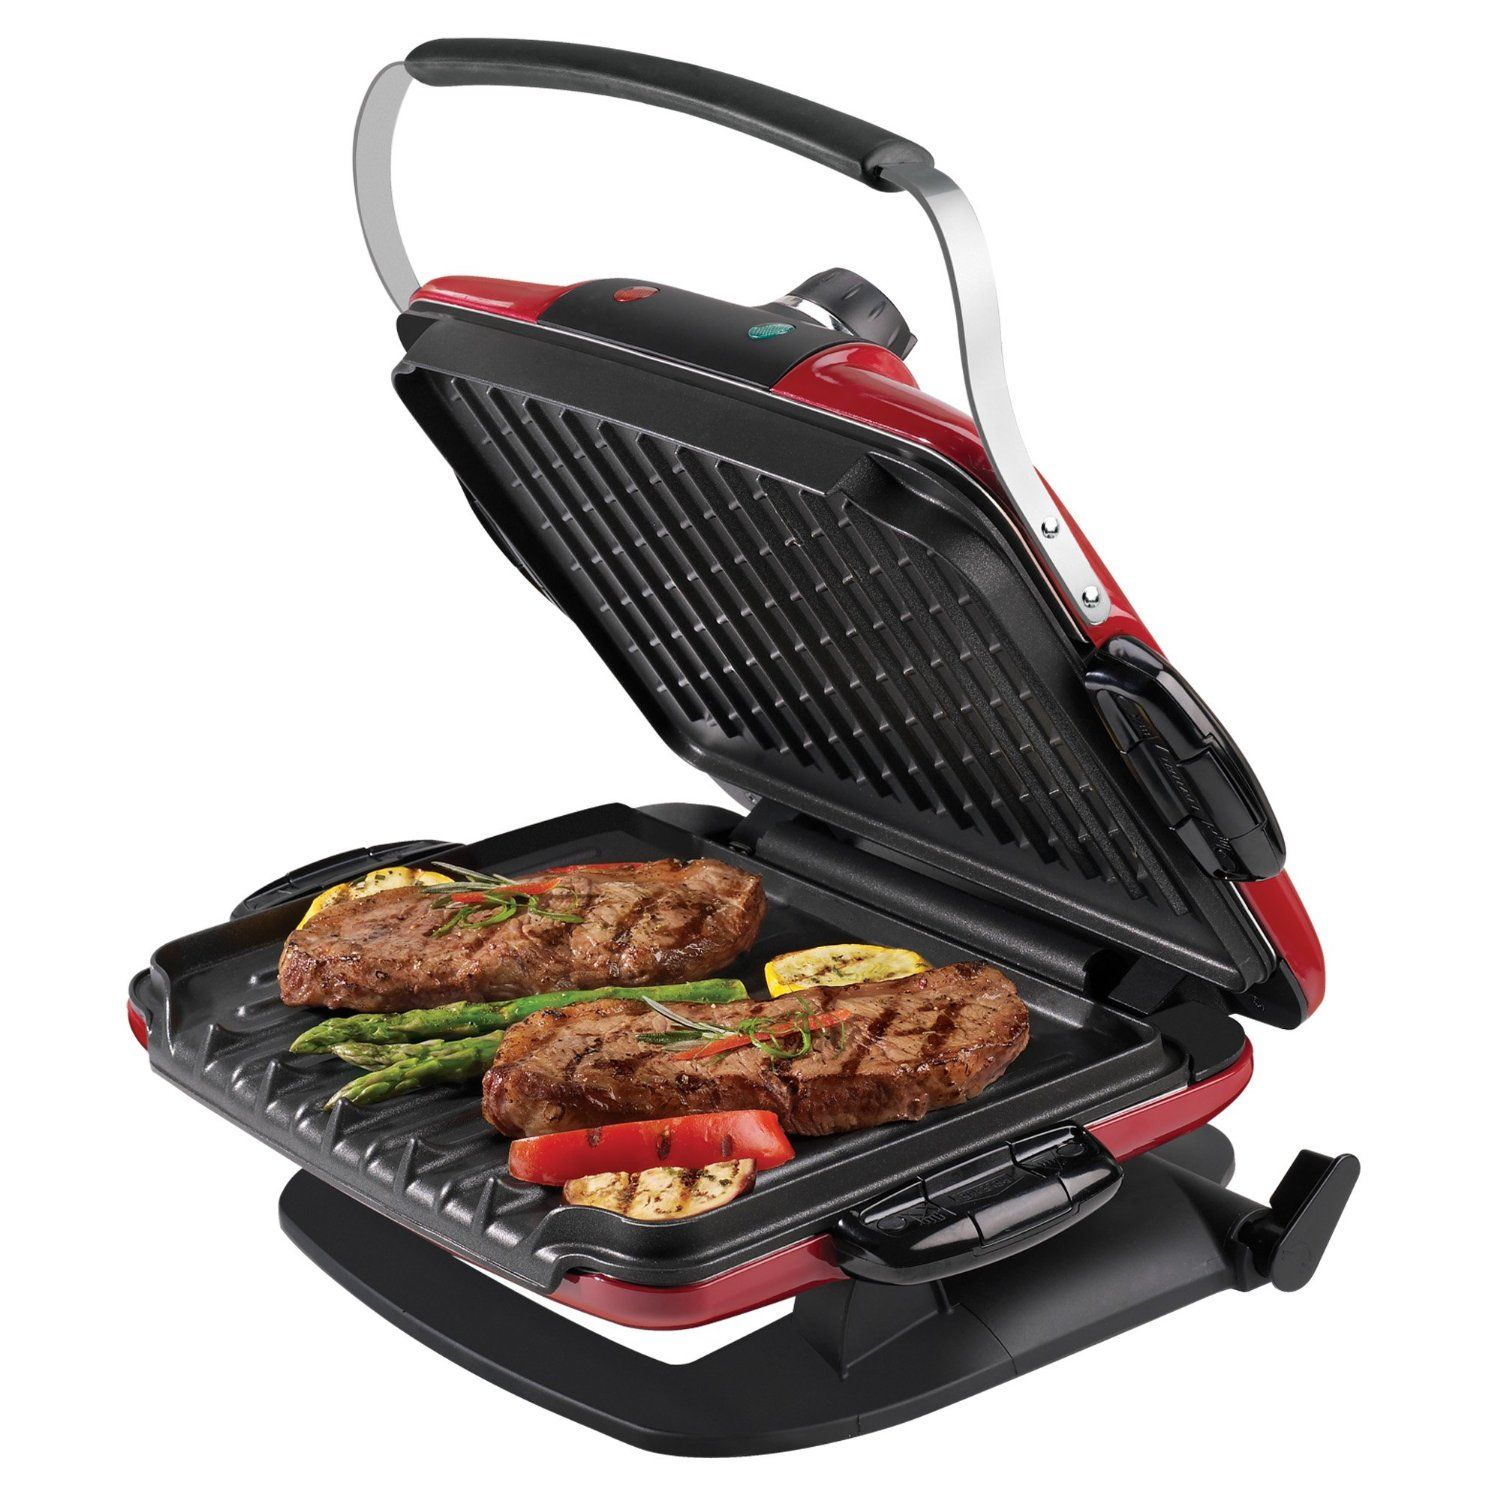 George Foreman GRP90WGR Next Grilleration Electric Nonstick Grill ...